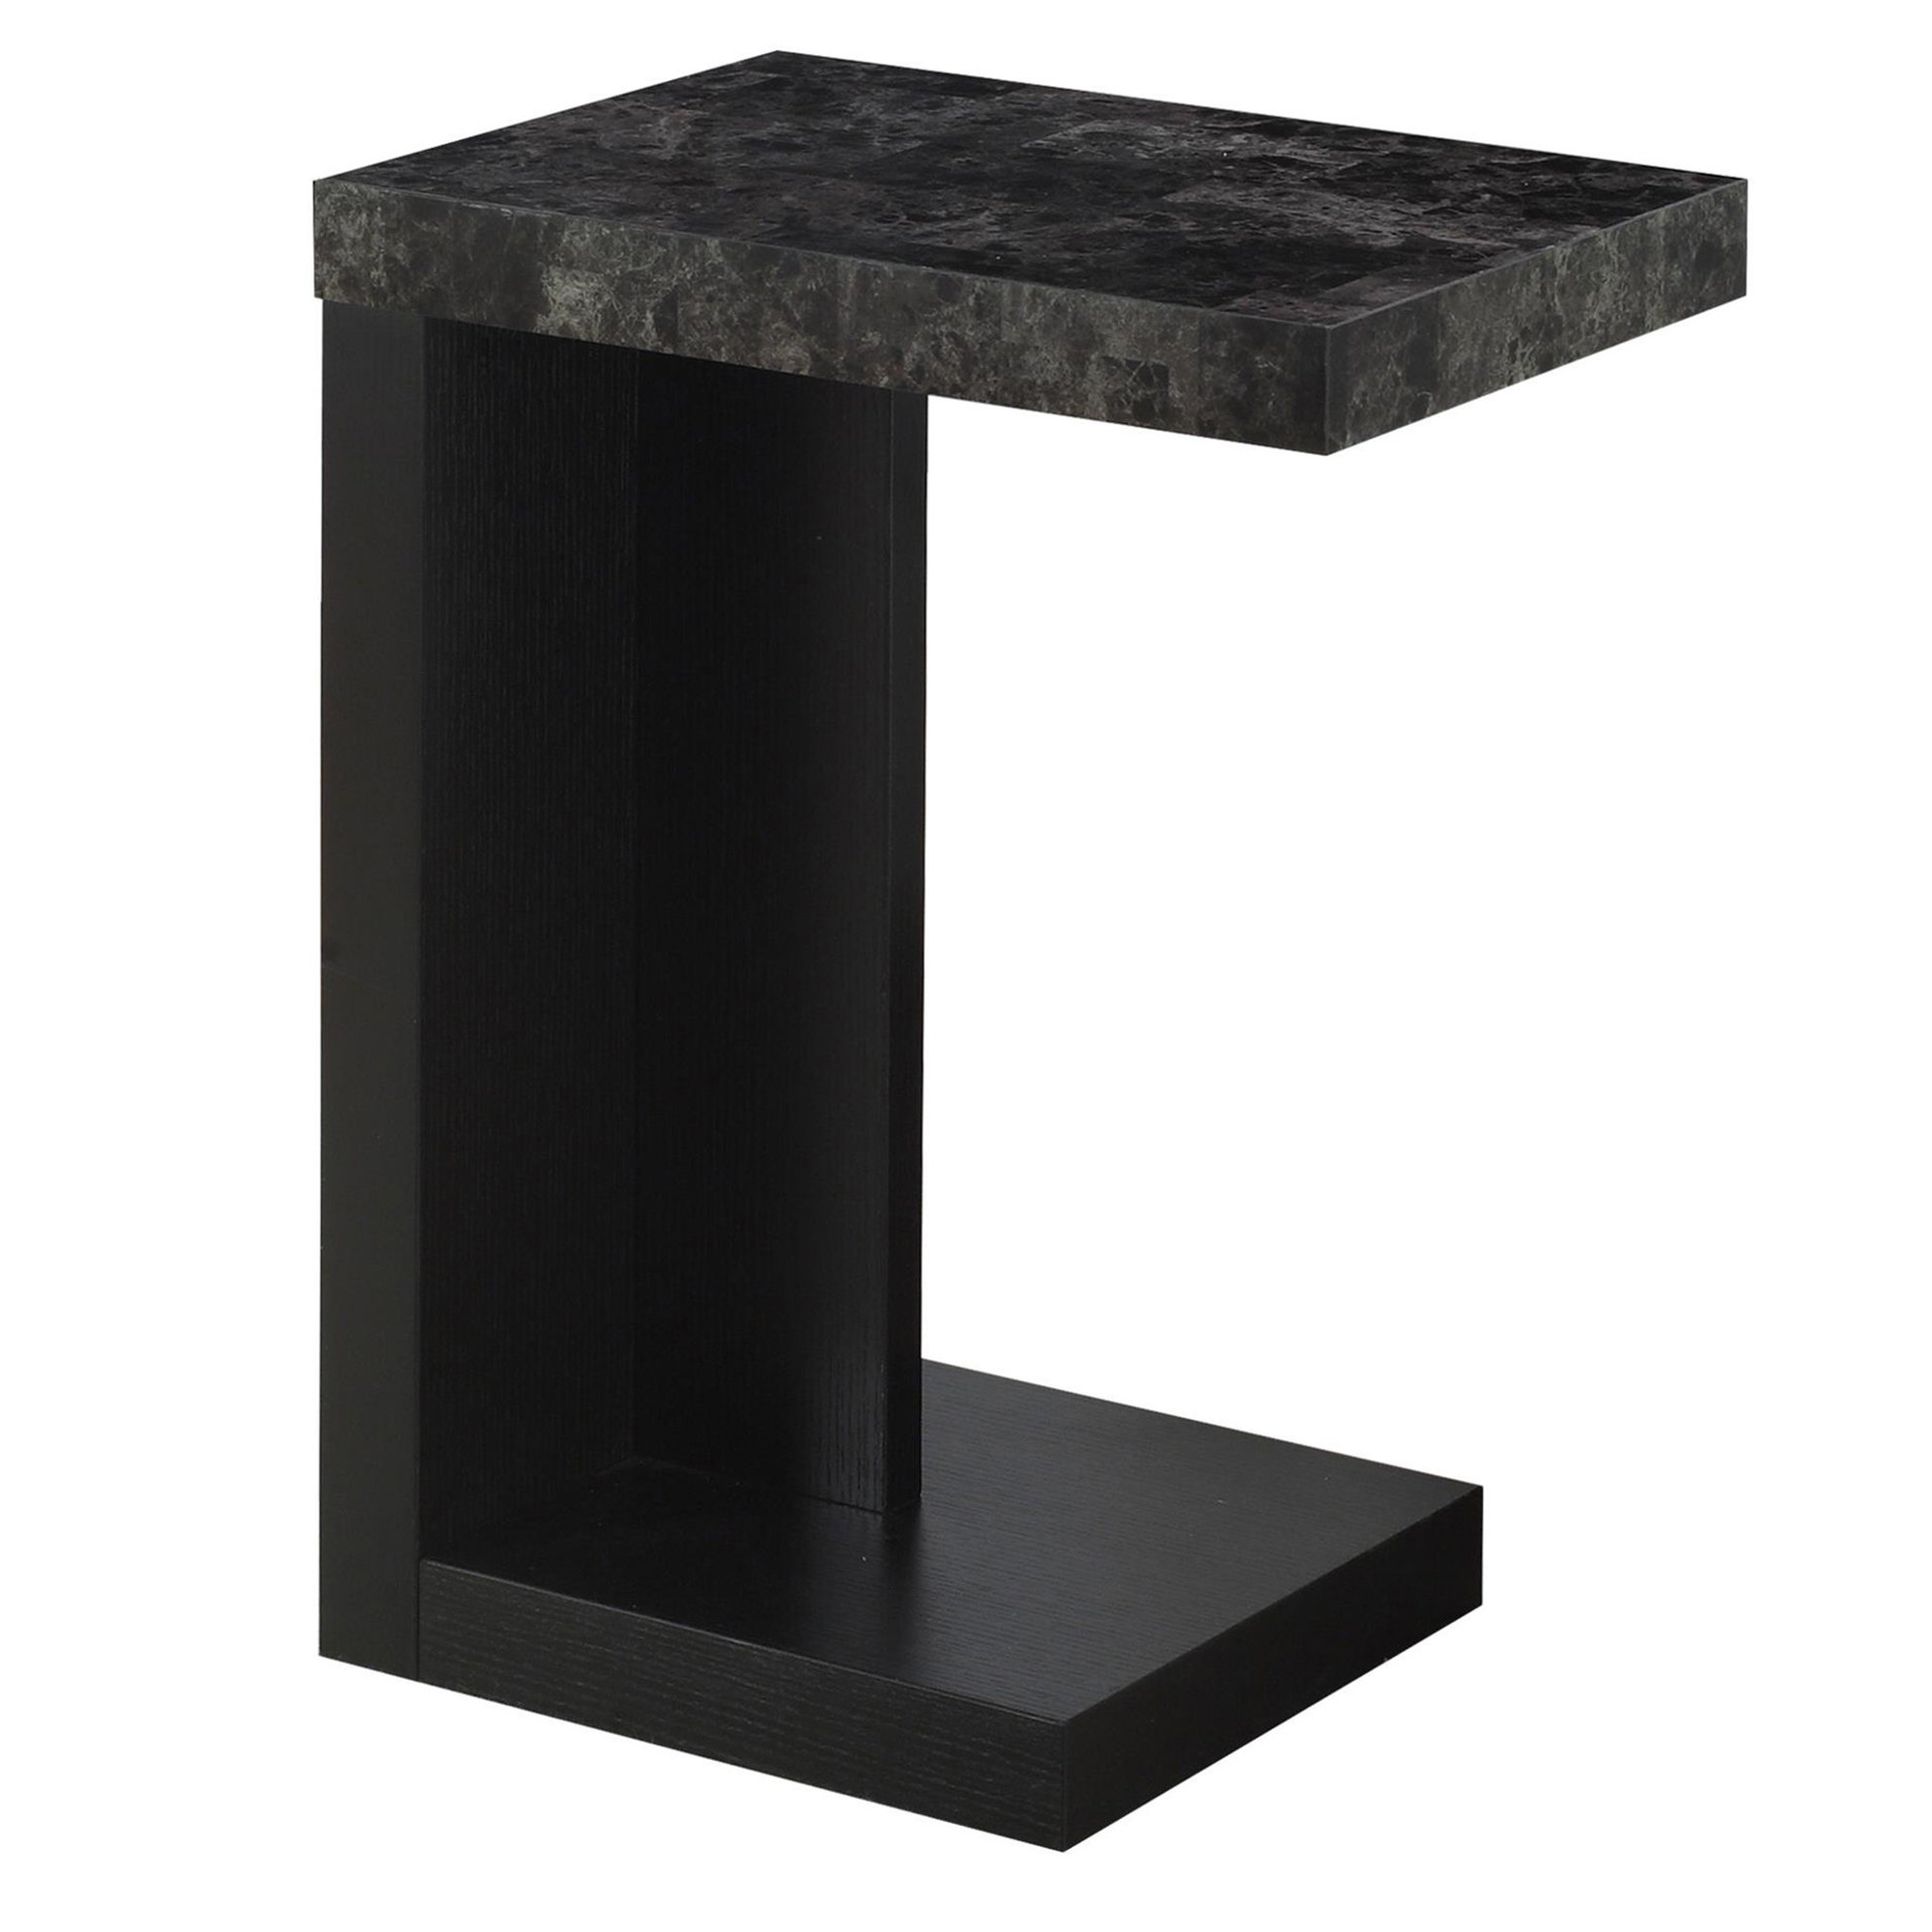 "24"" Accent Table, Black Base and Grey Marble-Look Top"